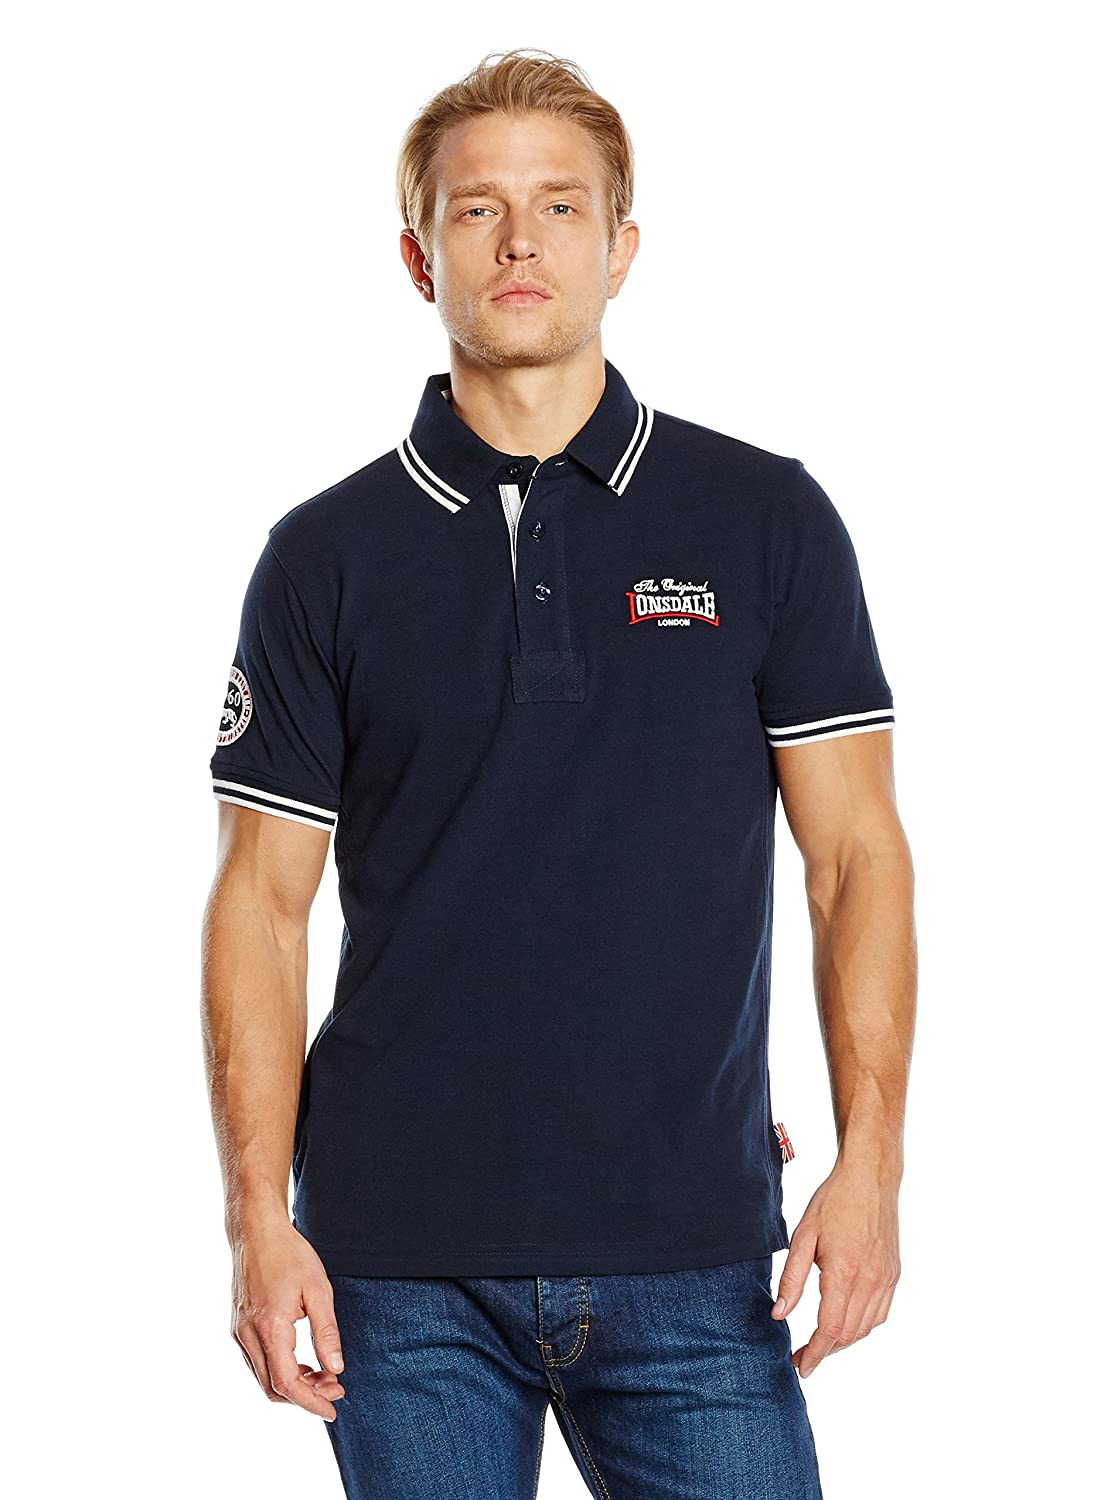 Lonsdale Polo Azul Marino XL (UK L): Amazon.es: Ropa y accesorios